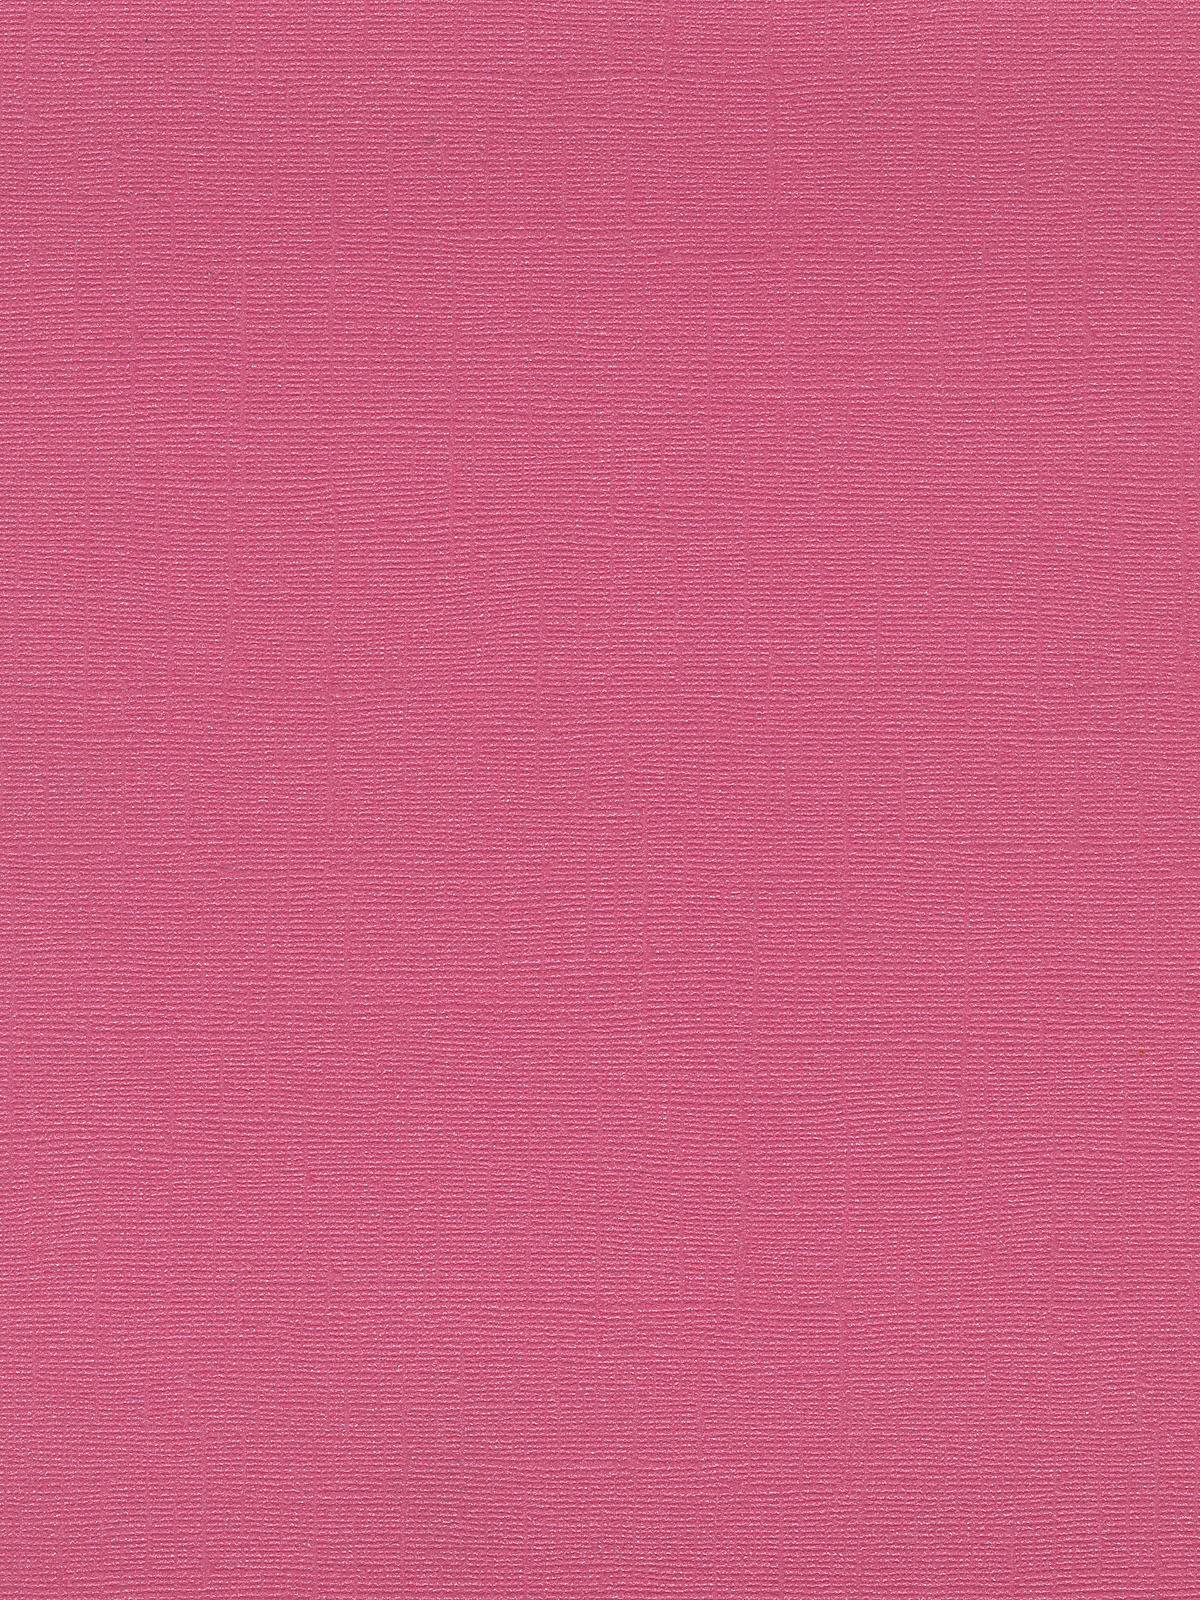 Bazzill Bling Cardstock 12X12-Feather Boa